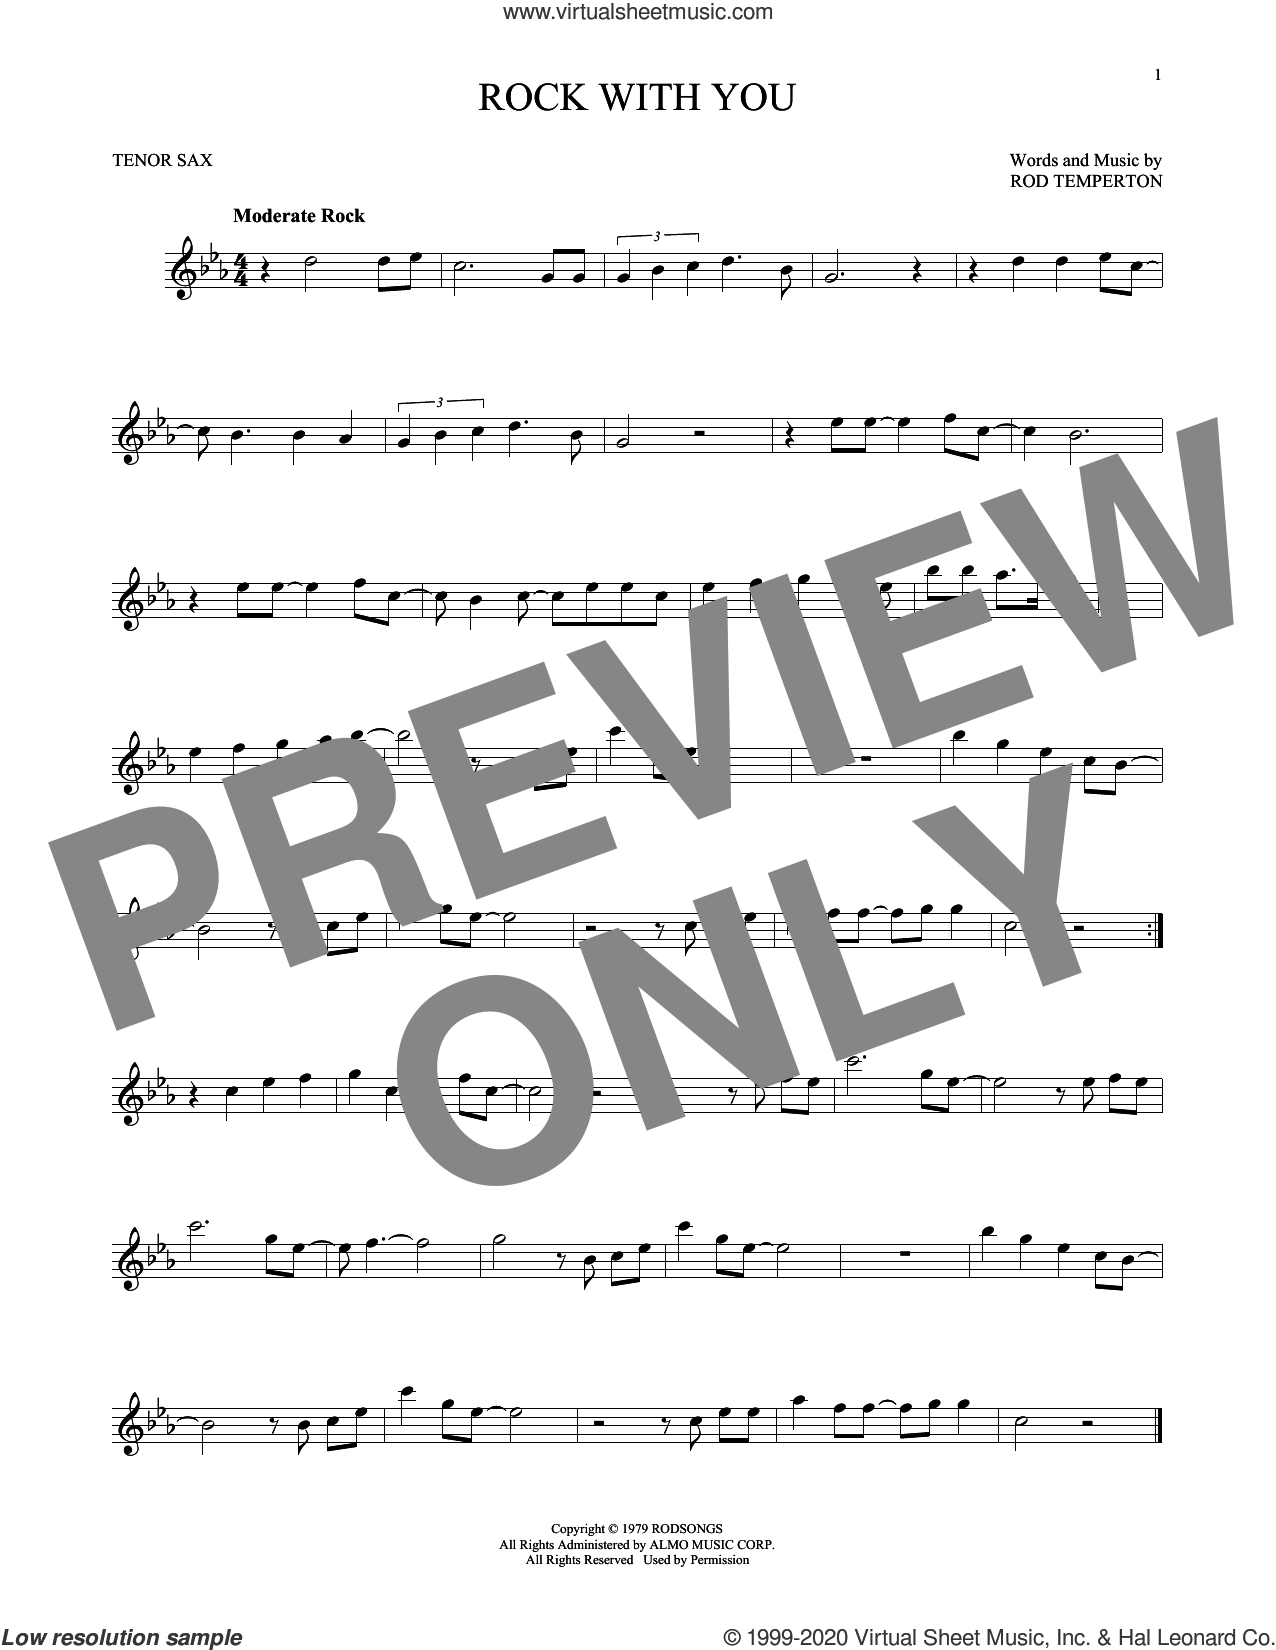 Rock With You sheet music for tenor saxophone solo by Michael Jackson and Rod Temperton, intermediate skill level